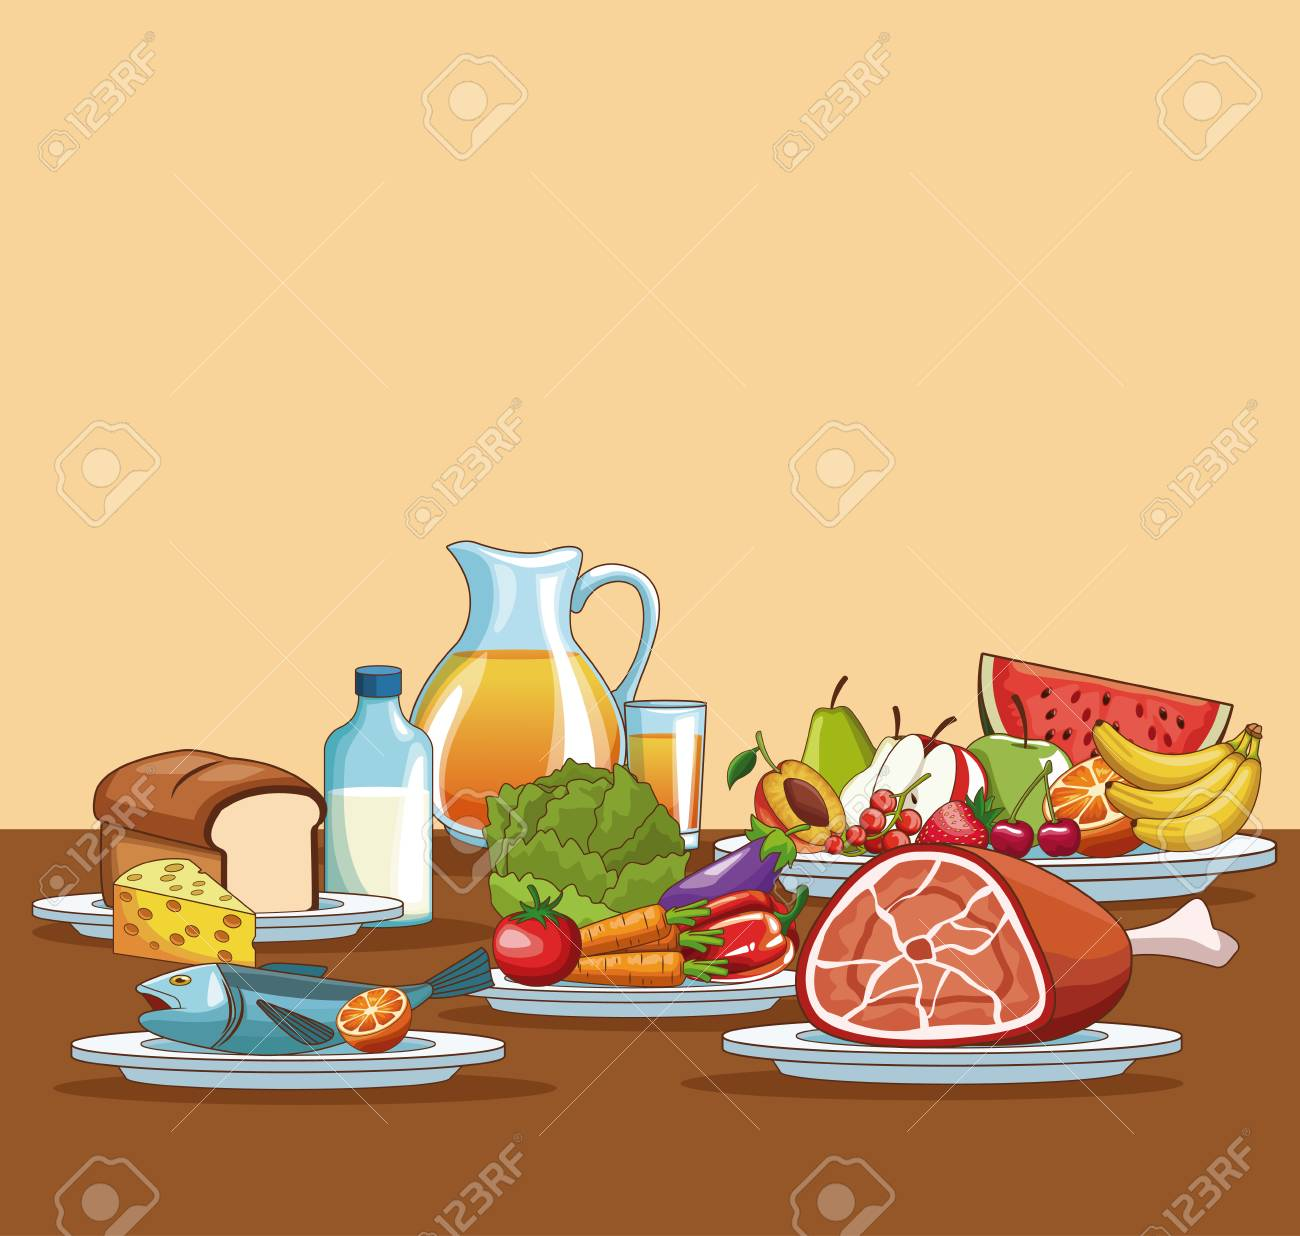 Healthy food on table cartoons vector illustration graphic design.